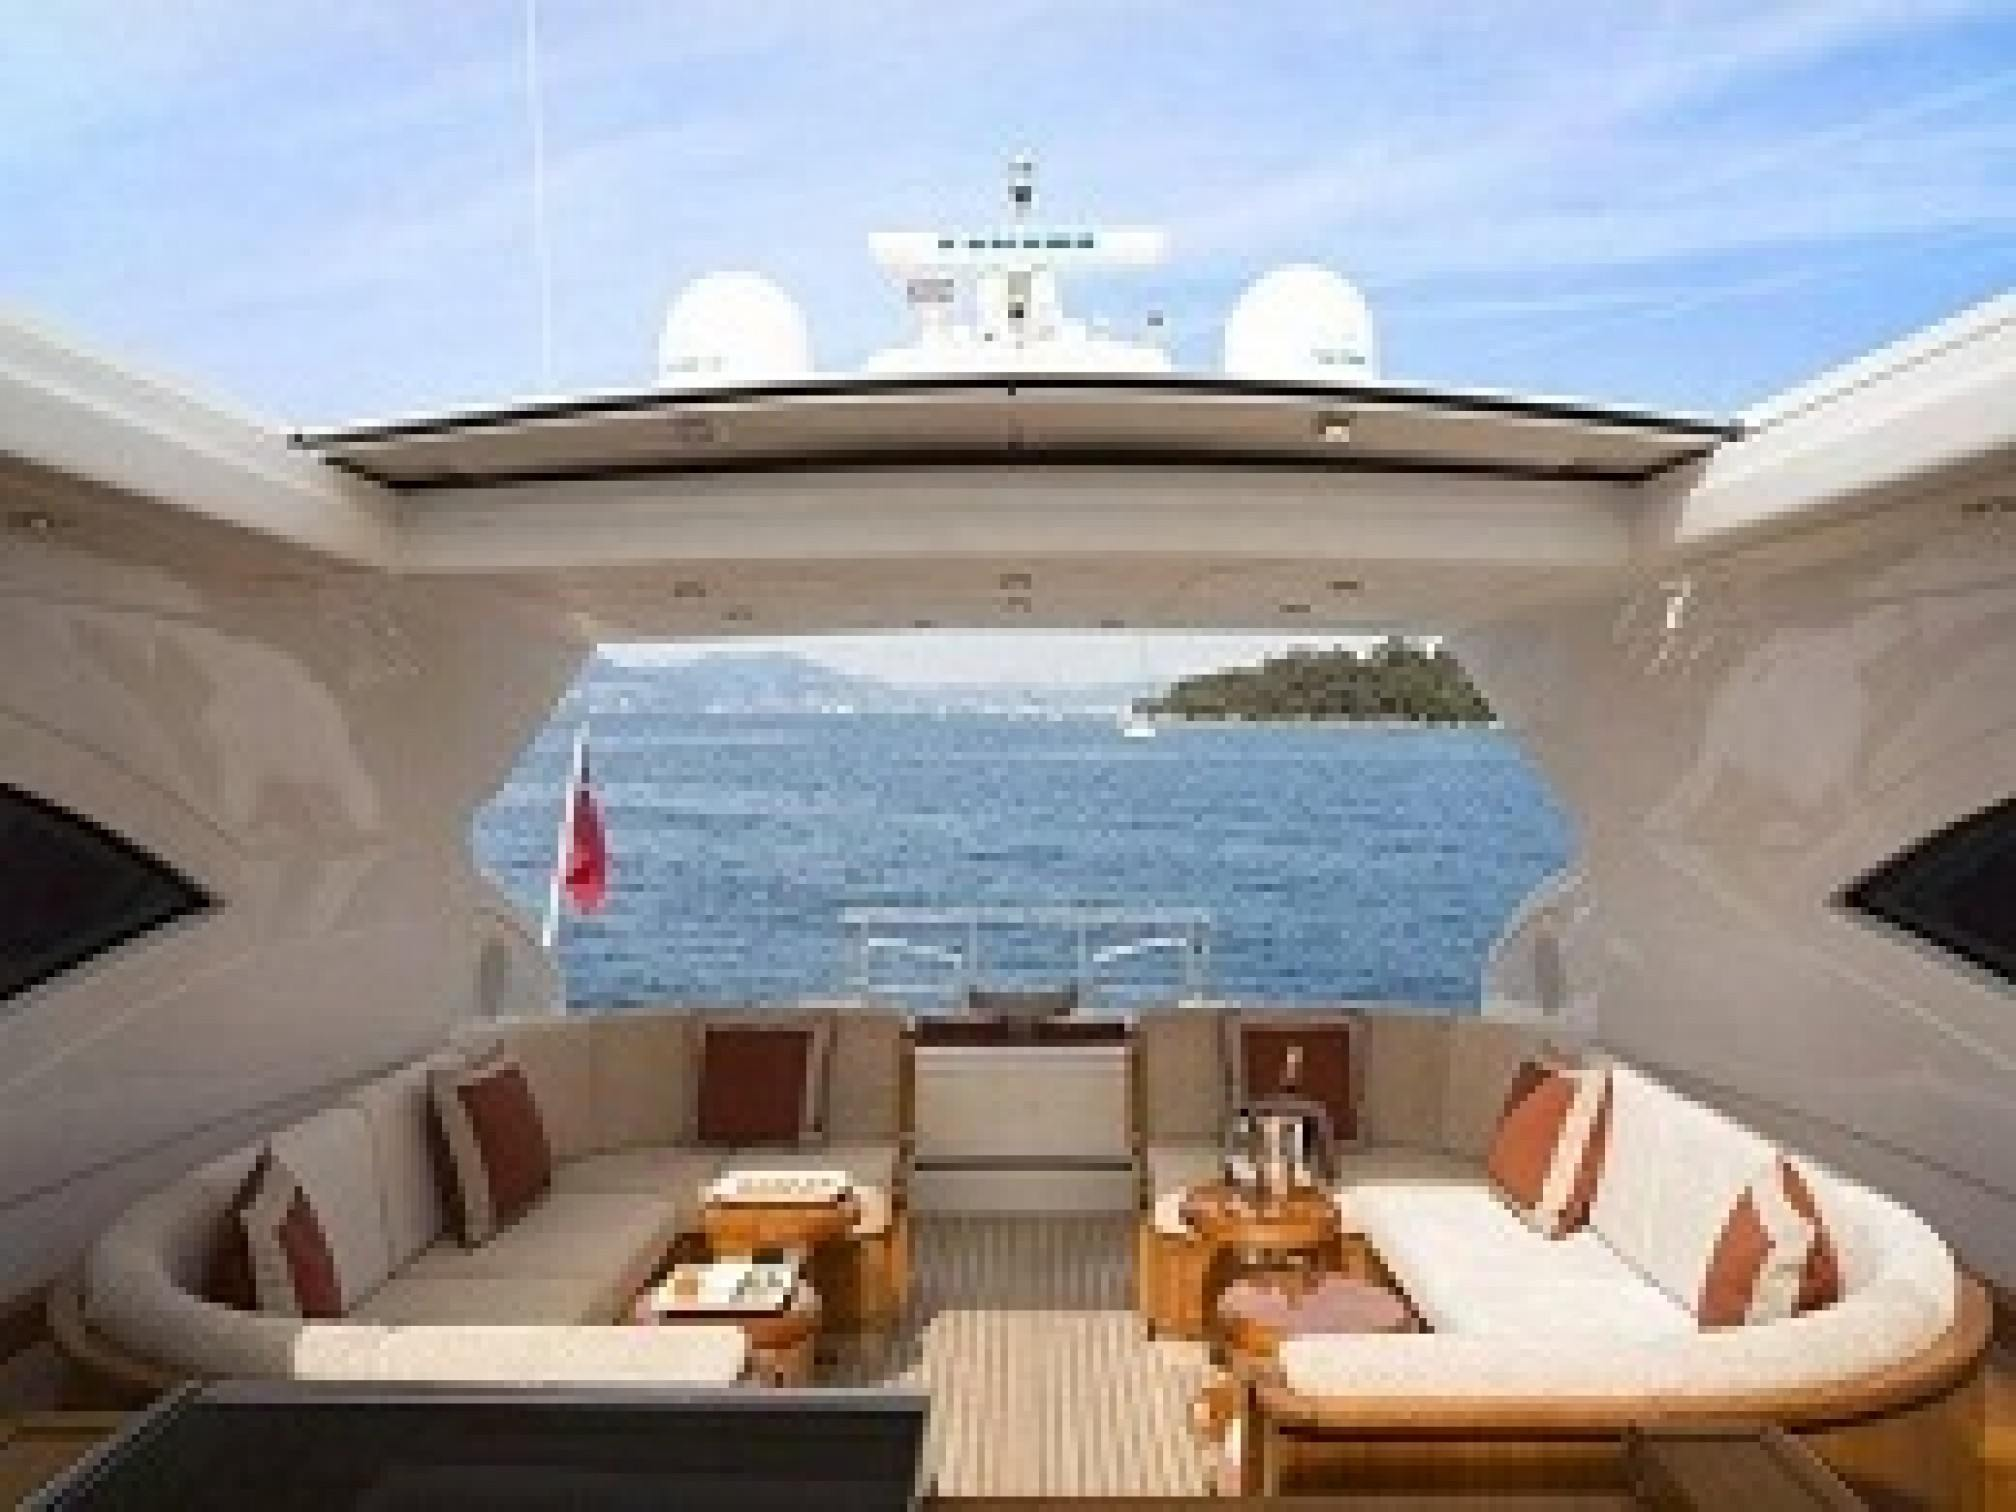 Mangusta 72 yacht charter outdoors